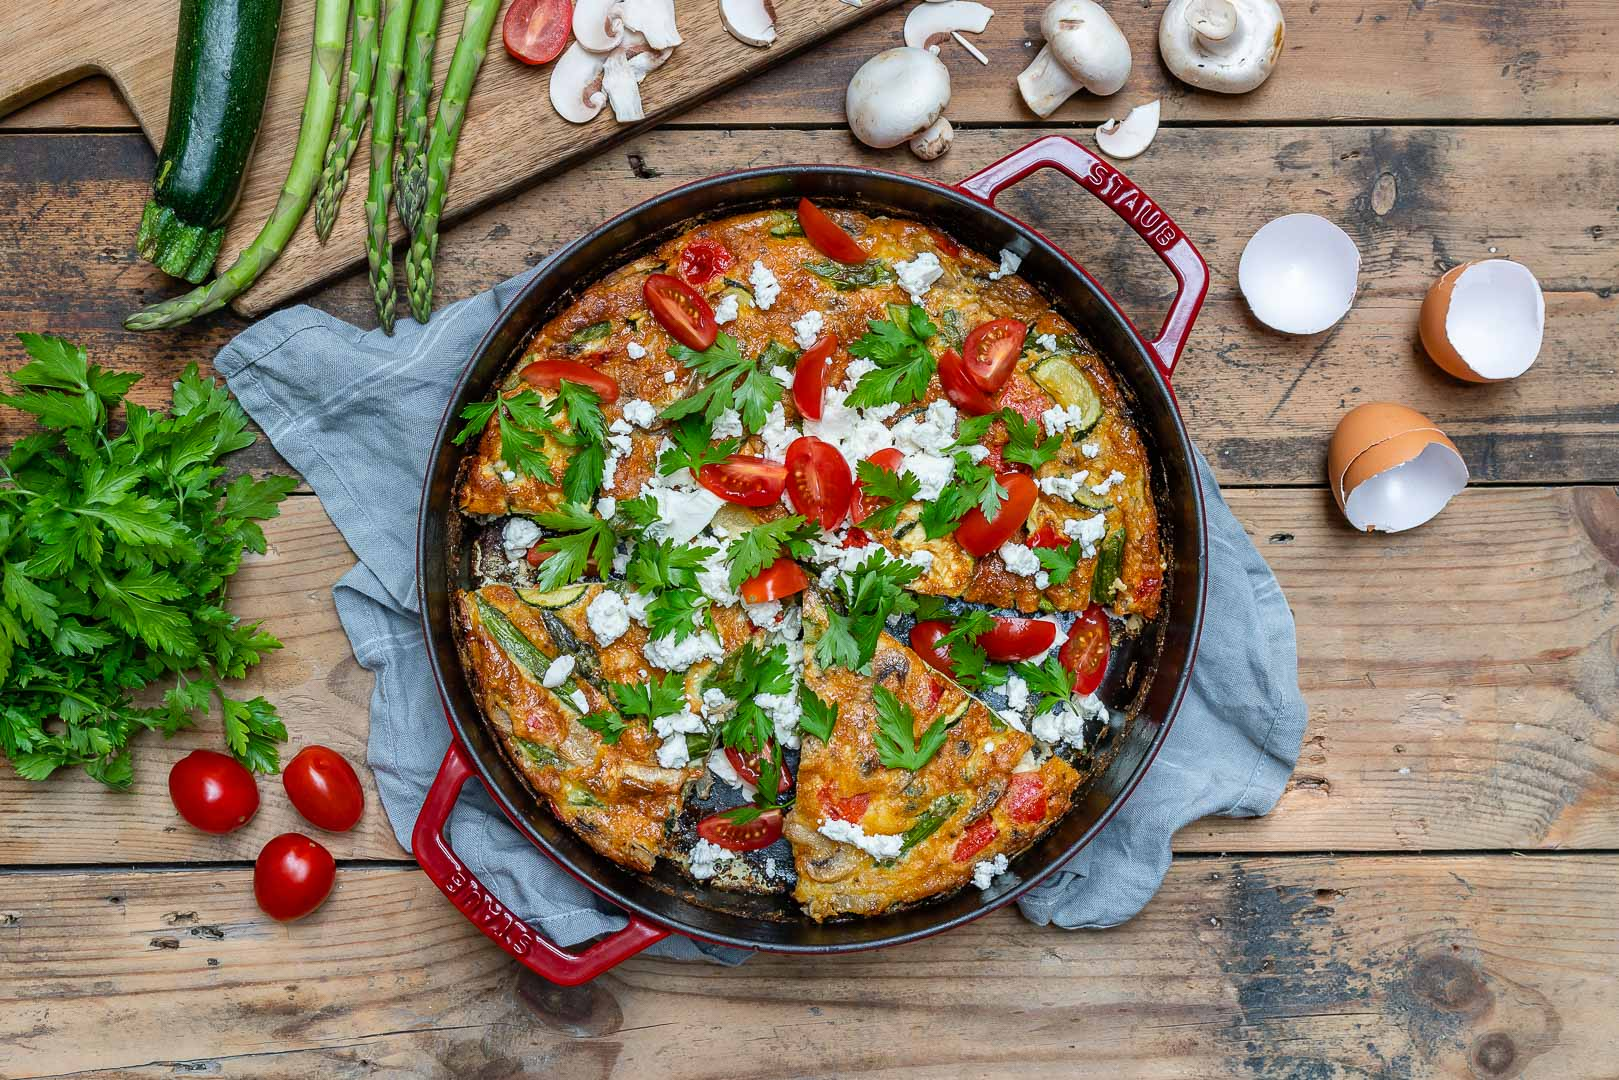 Easy Vegetable Frittata Recipe (With Eggs And Asparagus)